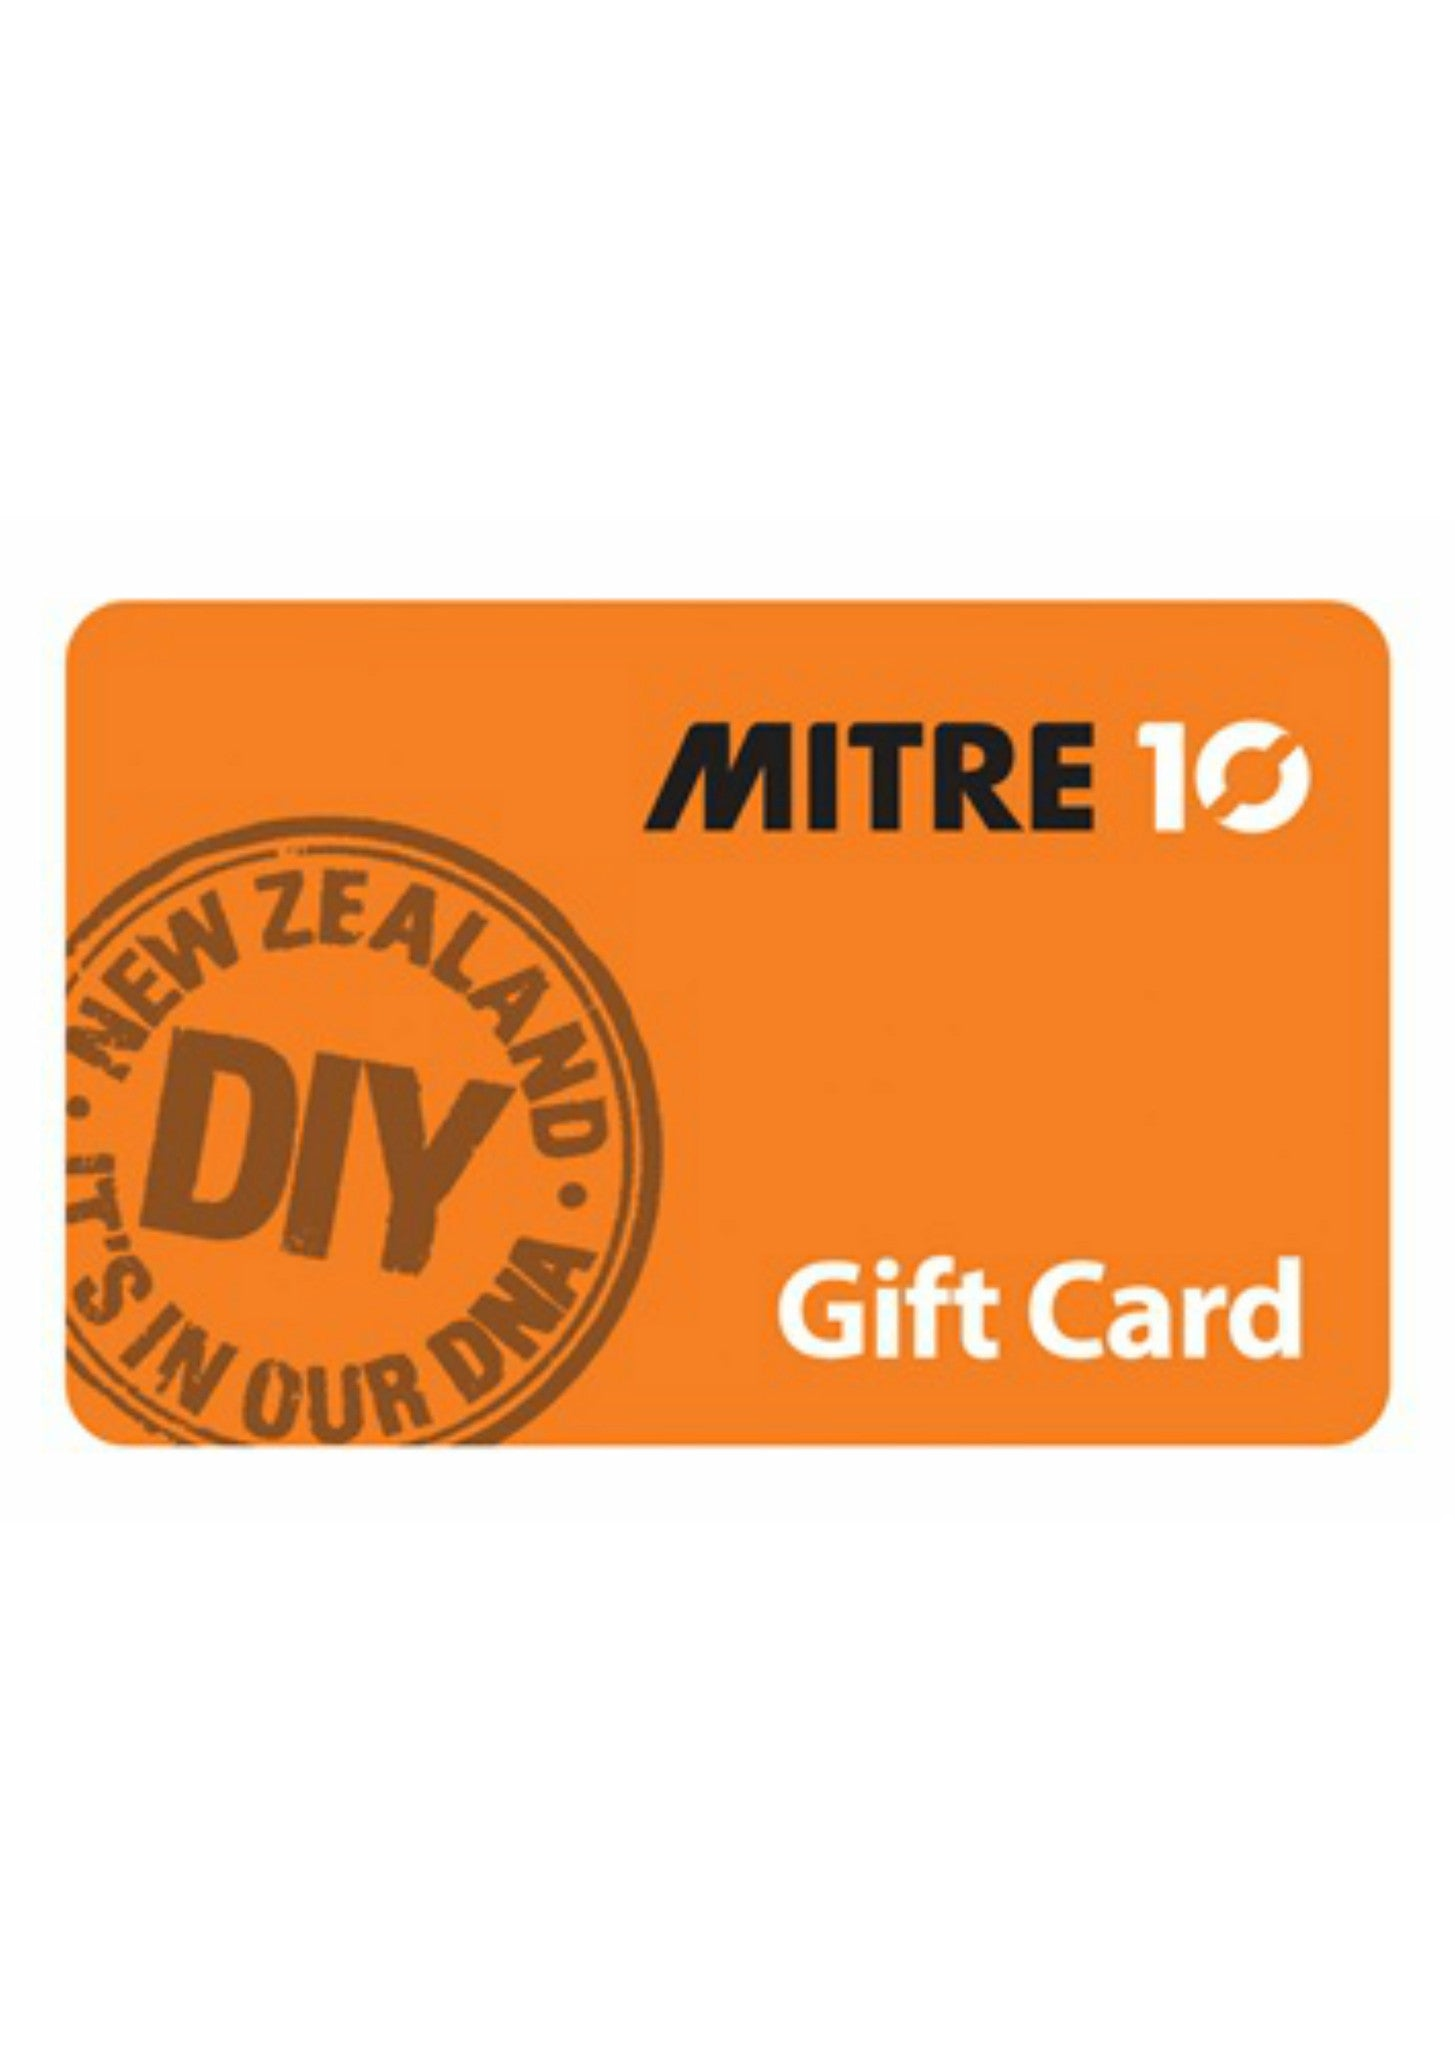 Mitre 10 gift card orchid grove for Gardening tools mitre 10